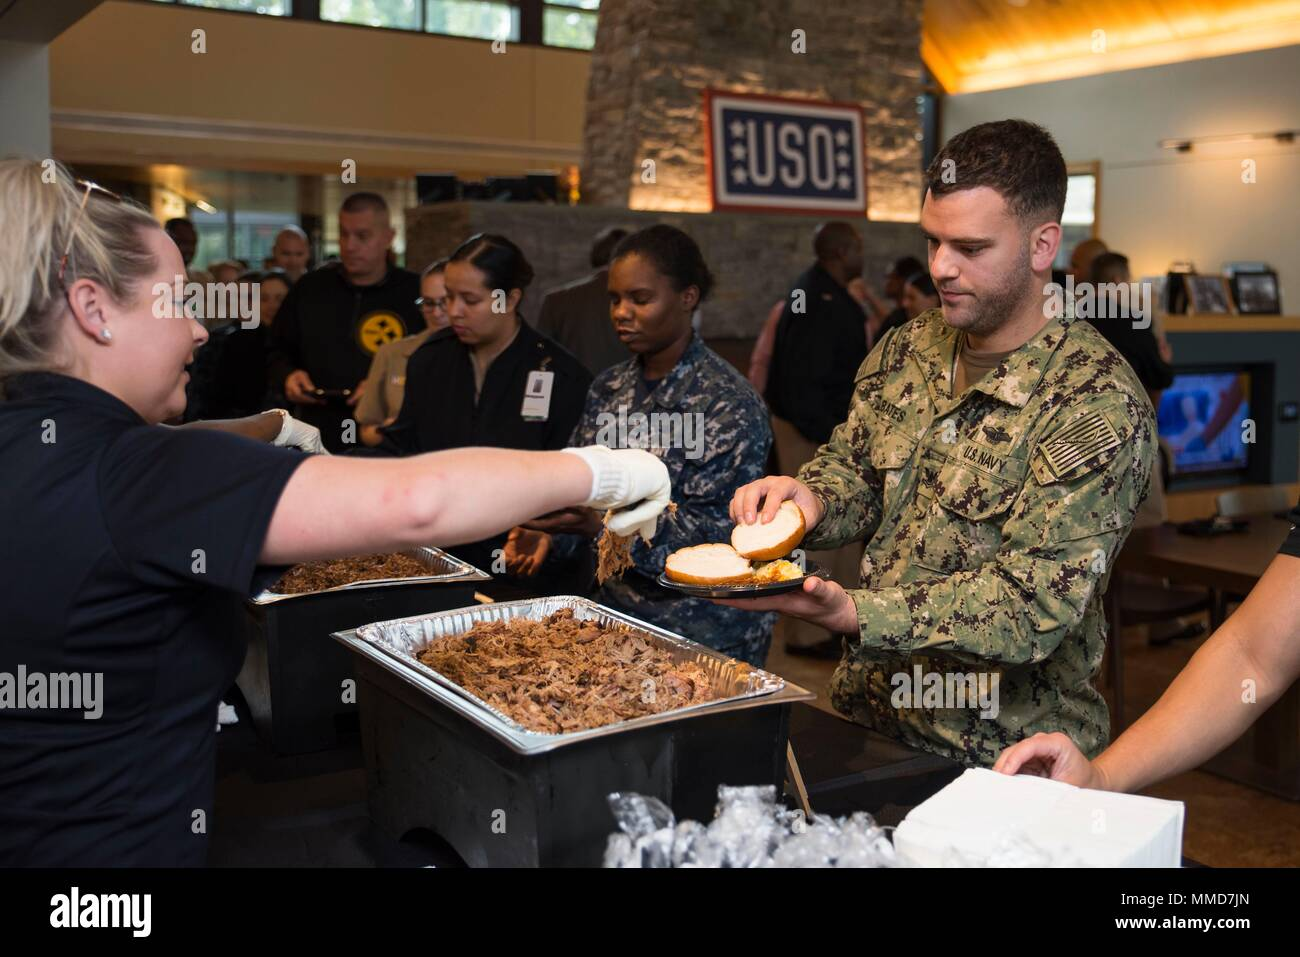 Service members are served food by staff from Mission Barbecue at the USO Family and Warrior Center at Bethesa Oct. 13.The Navy's birthday honors the brave men and women who conduct a wide range of combat, training, humanitarian, rescue and other missions worldwide, protecting the nation's interests, promoting its security, and helping to shape its history and culture. (U.S. Navy photo by Mass Communication Specialist 2nd Class William Phillips/Released) Stock Photo